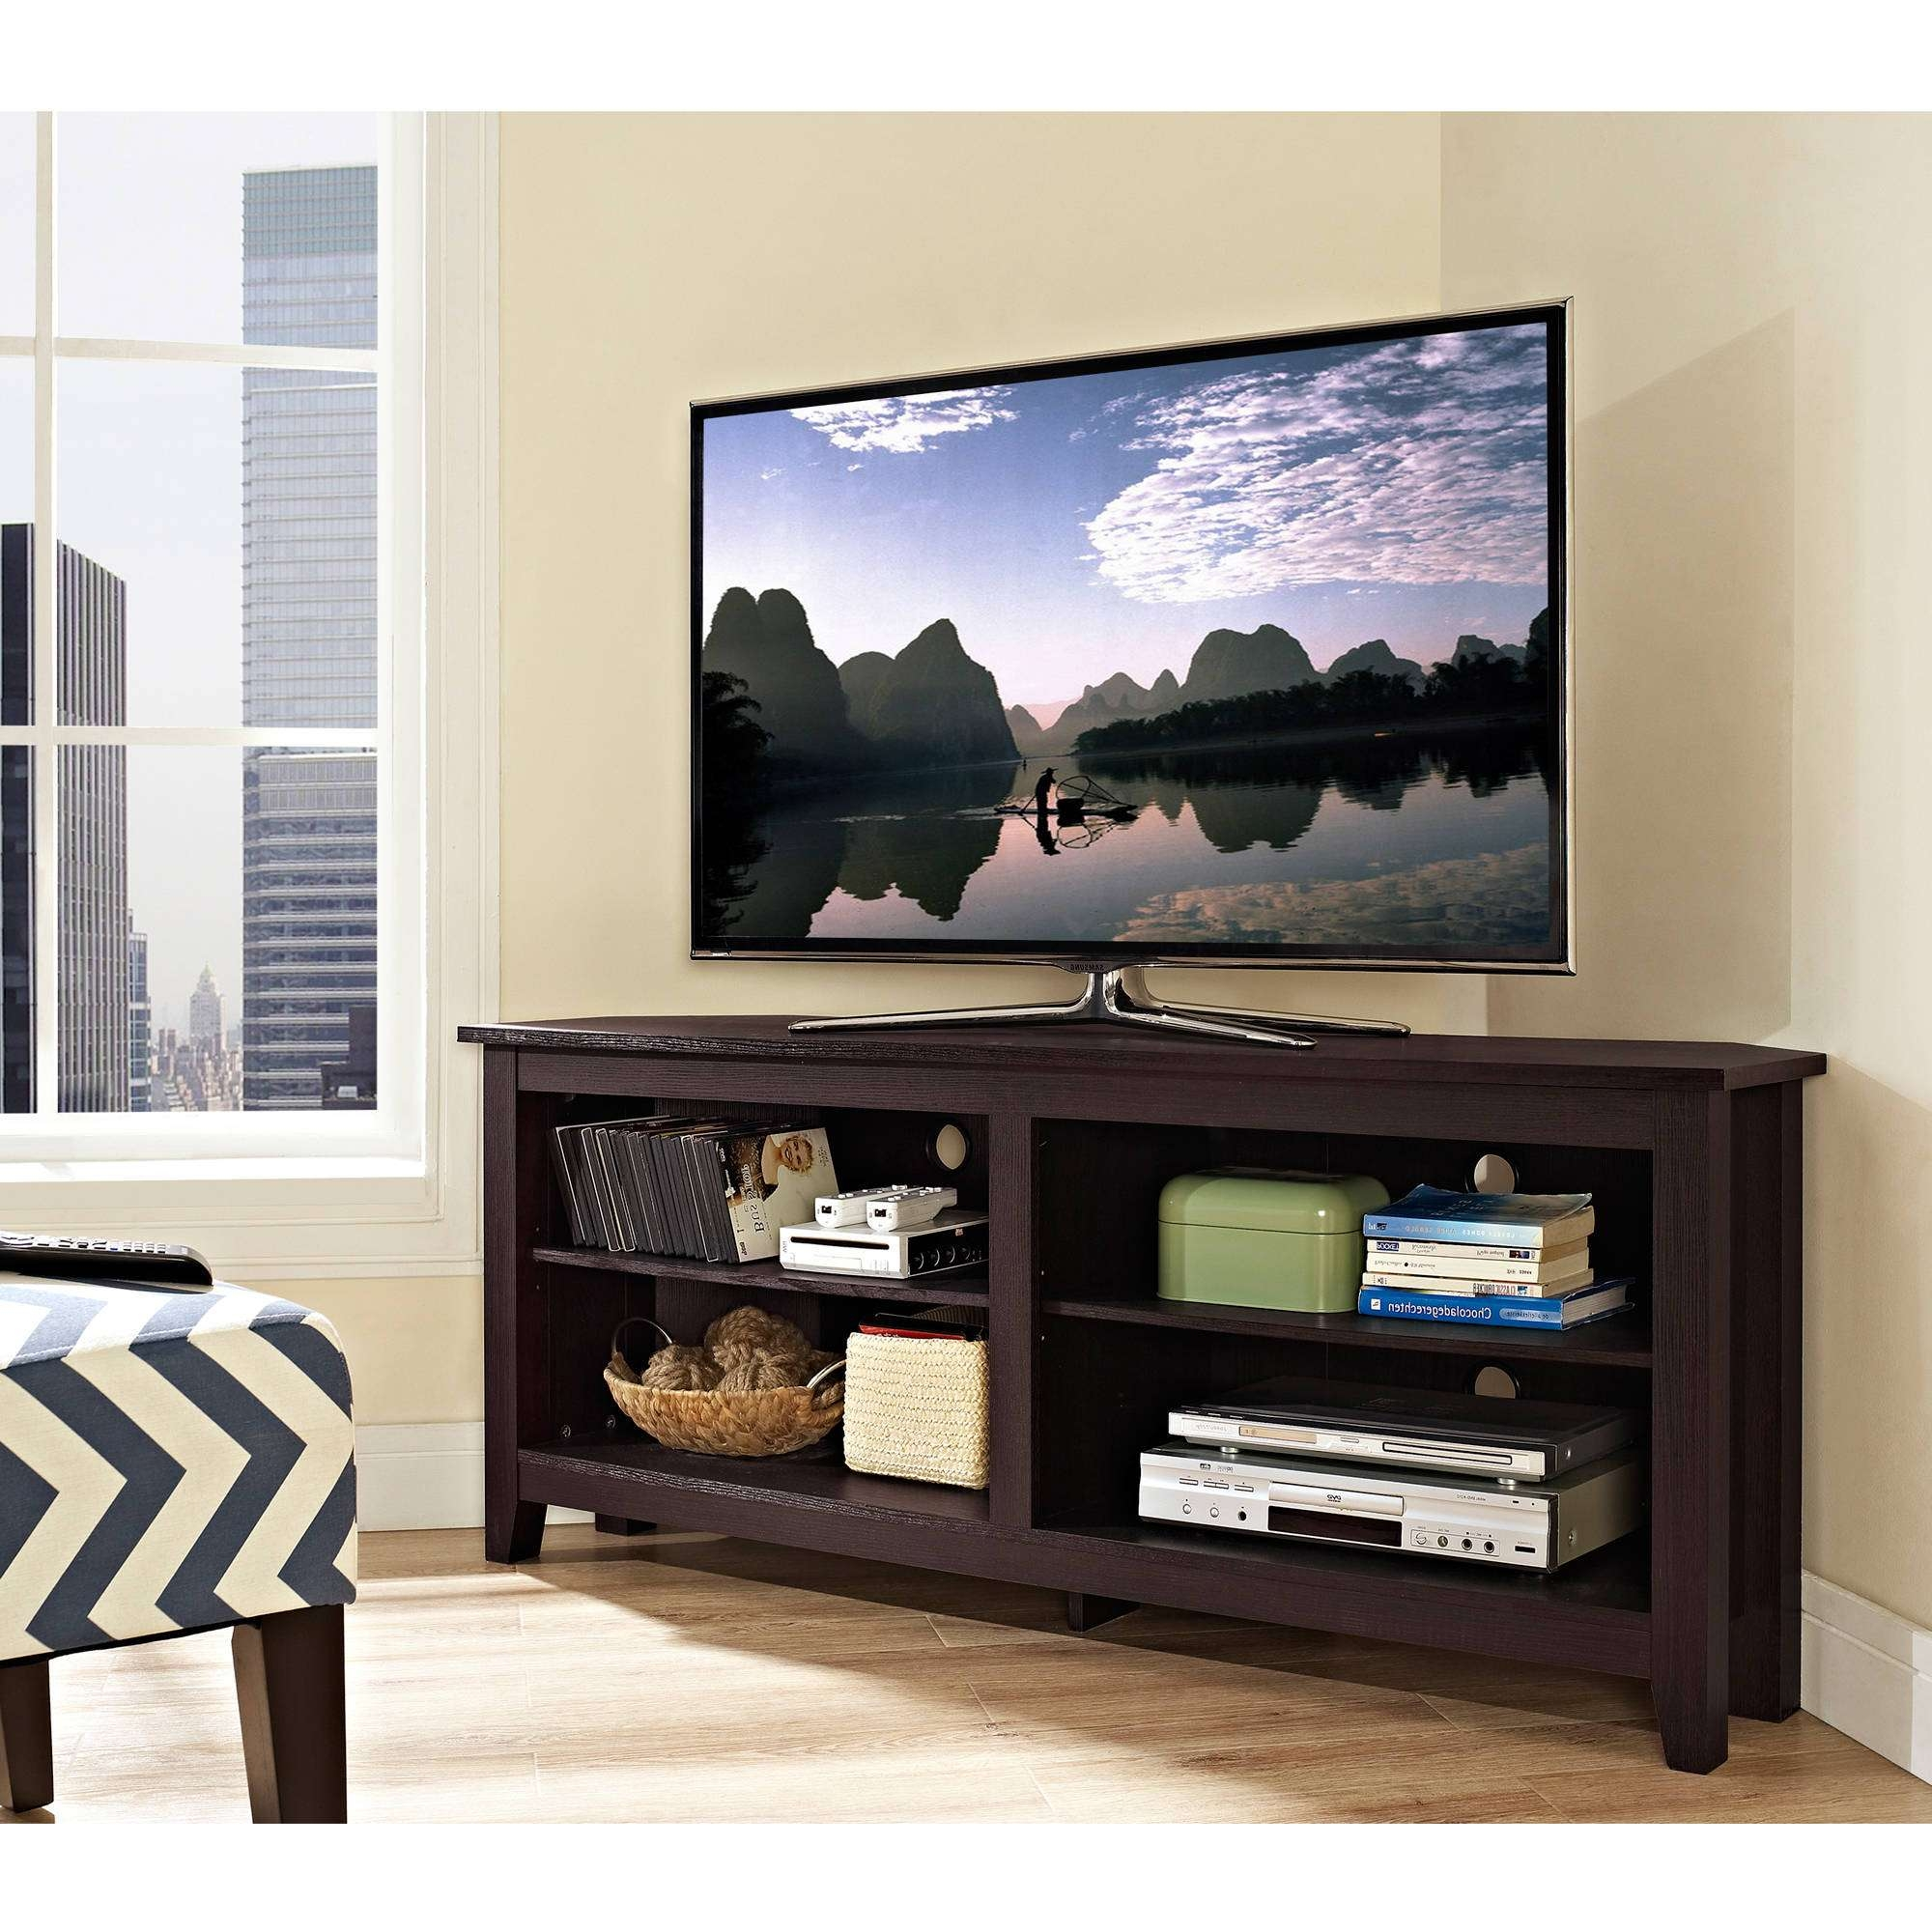 Tv Stand : Corner Tv Stand Wood Cherry Haydenwoodhaven Throughout Black Corner Tv Stands For Tvs Up To  (View 13 of 20)